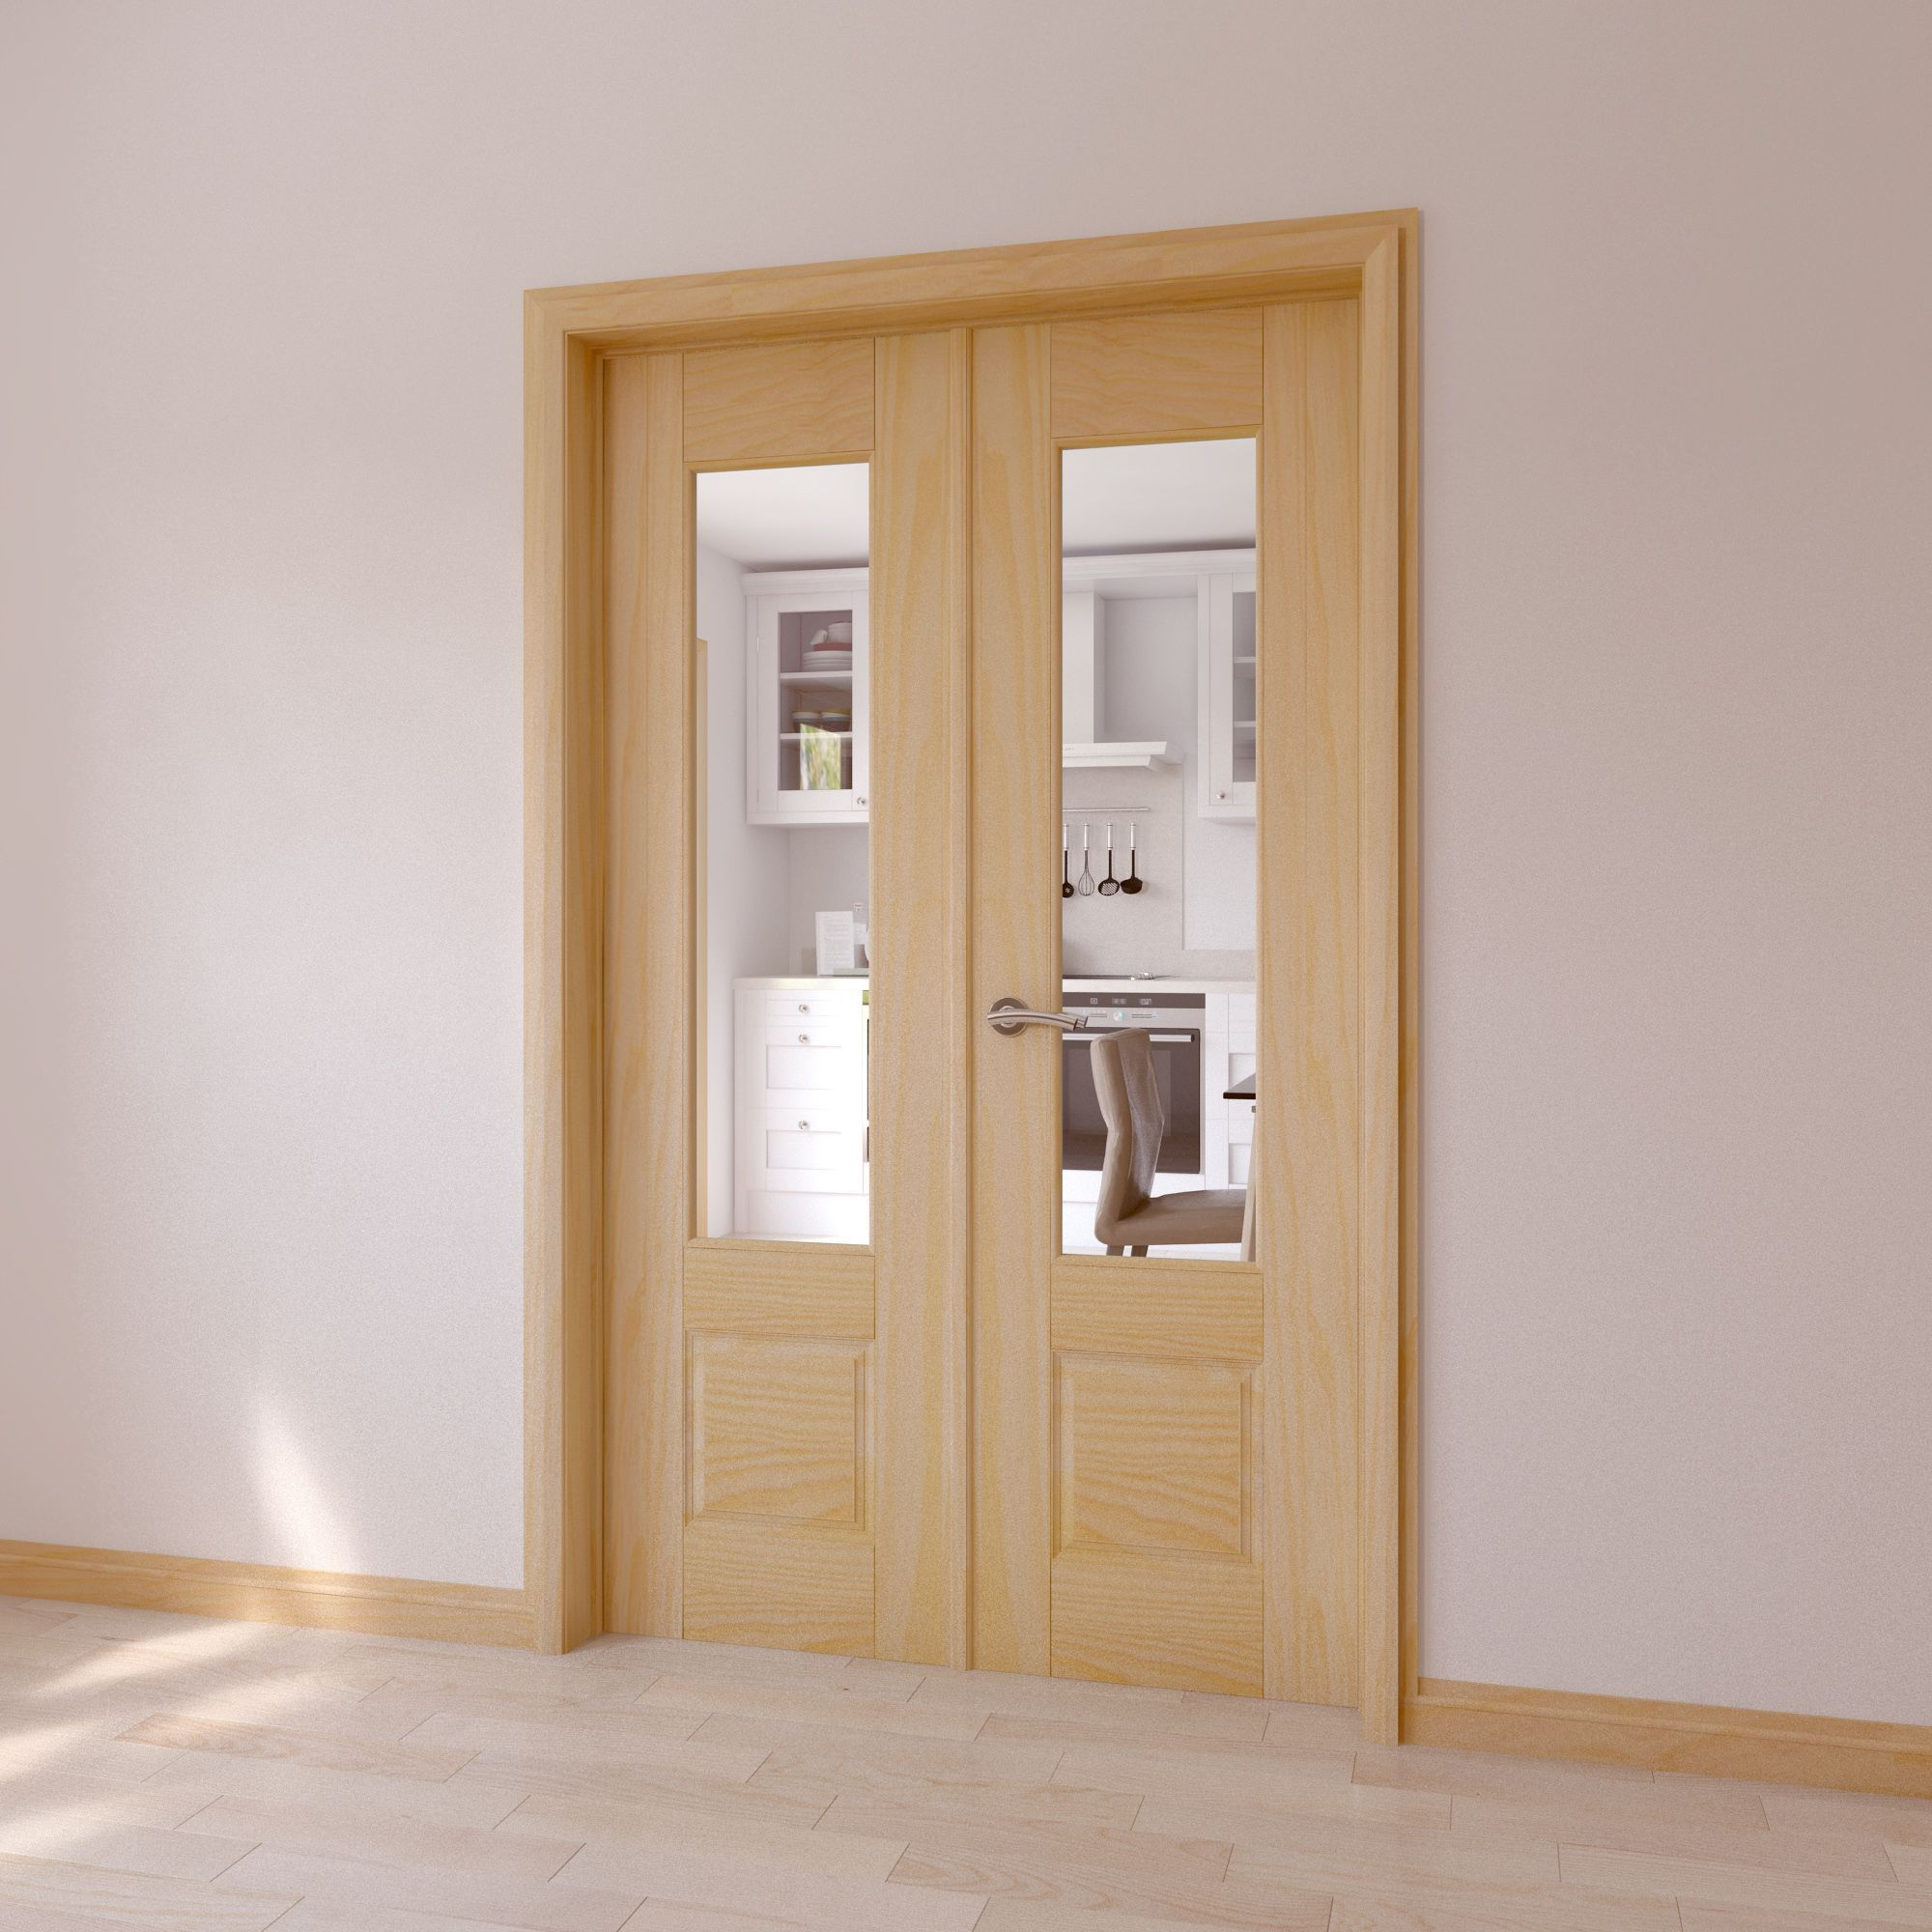 Clear glazed 2 panel clear pine internal french door set for Double glazed glass panels